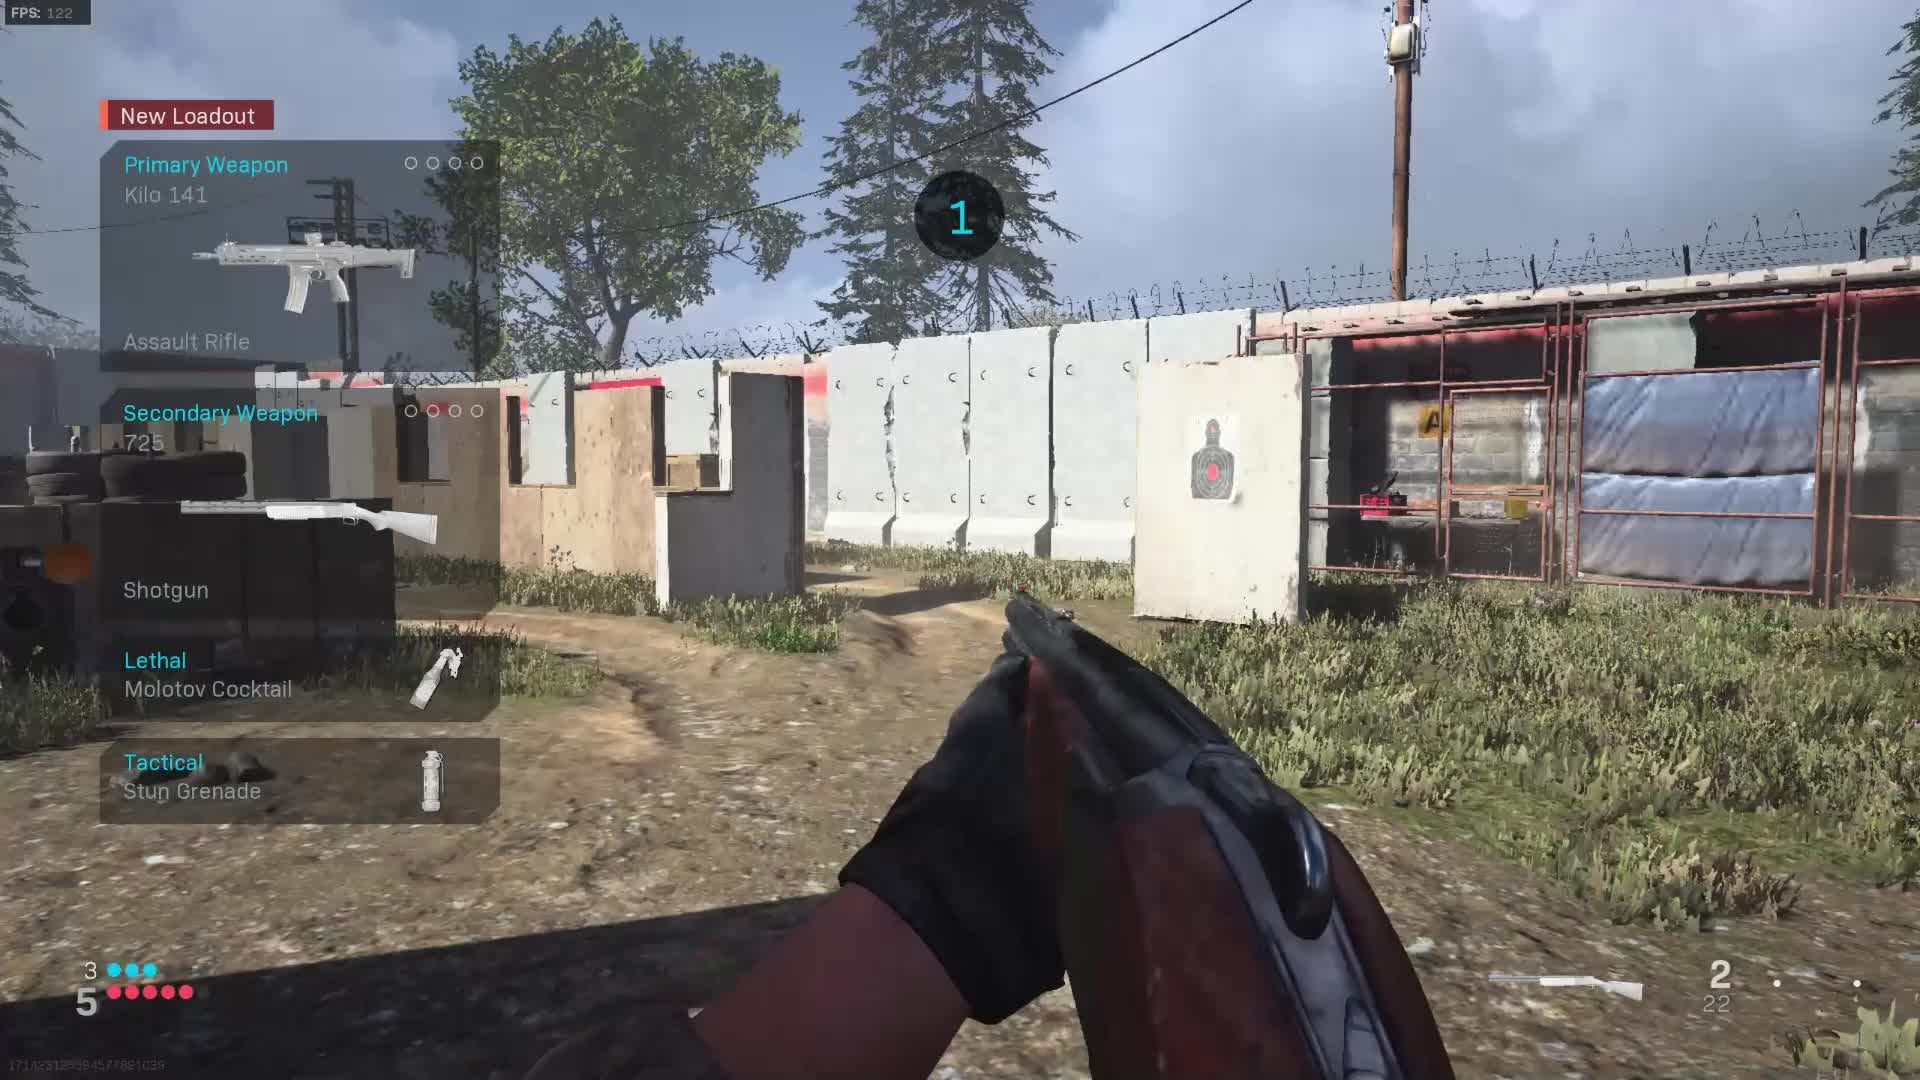 Call of Duty: POTG - Shit On #POTG video cover image 1